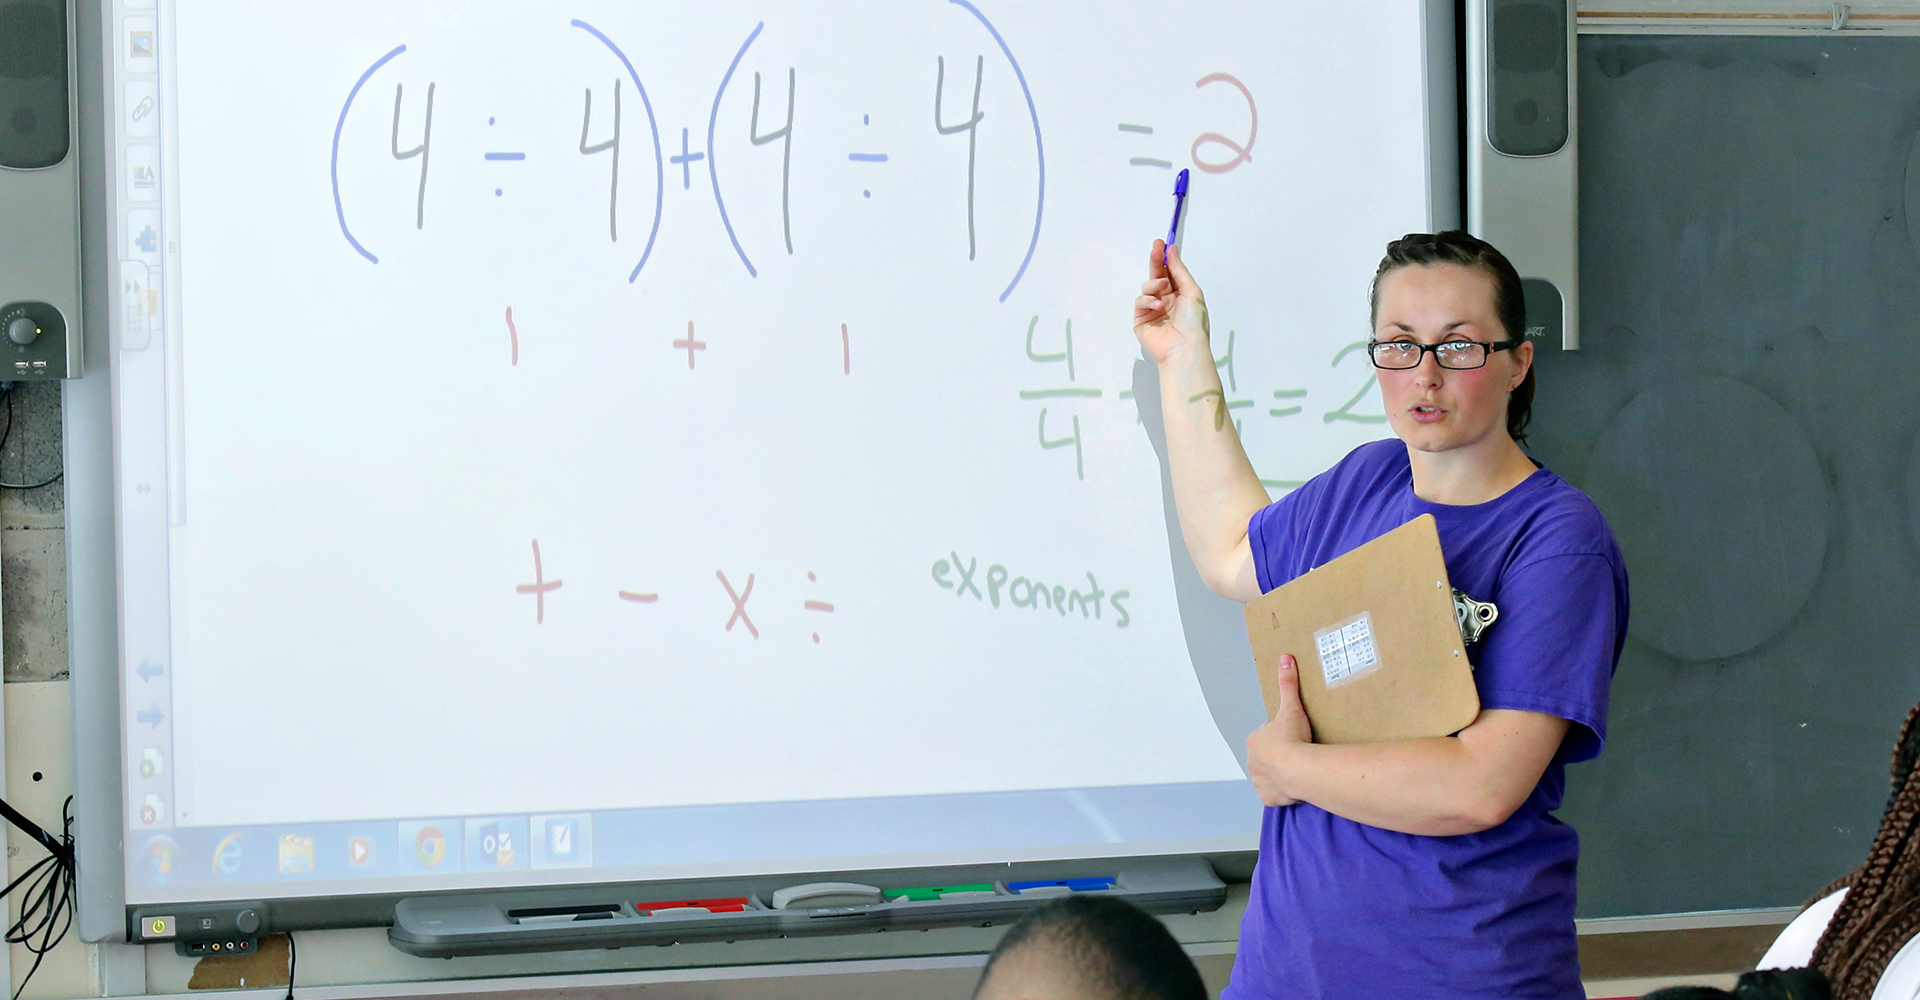 Math teacher education warner graduate programs female teacher explaining a math equation 1betcityfo Image collections